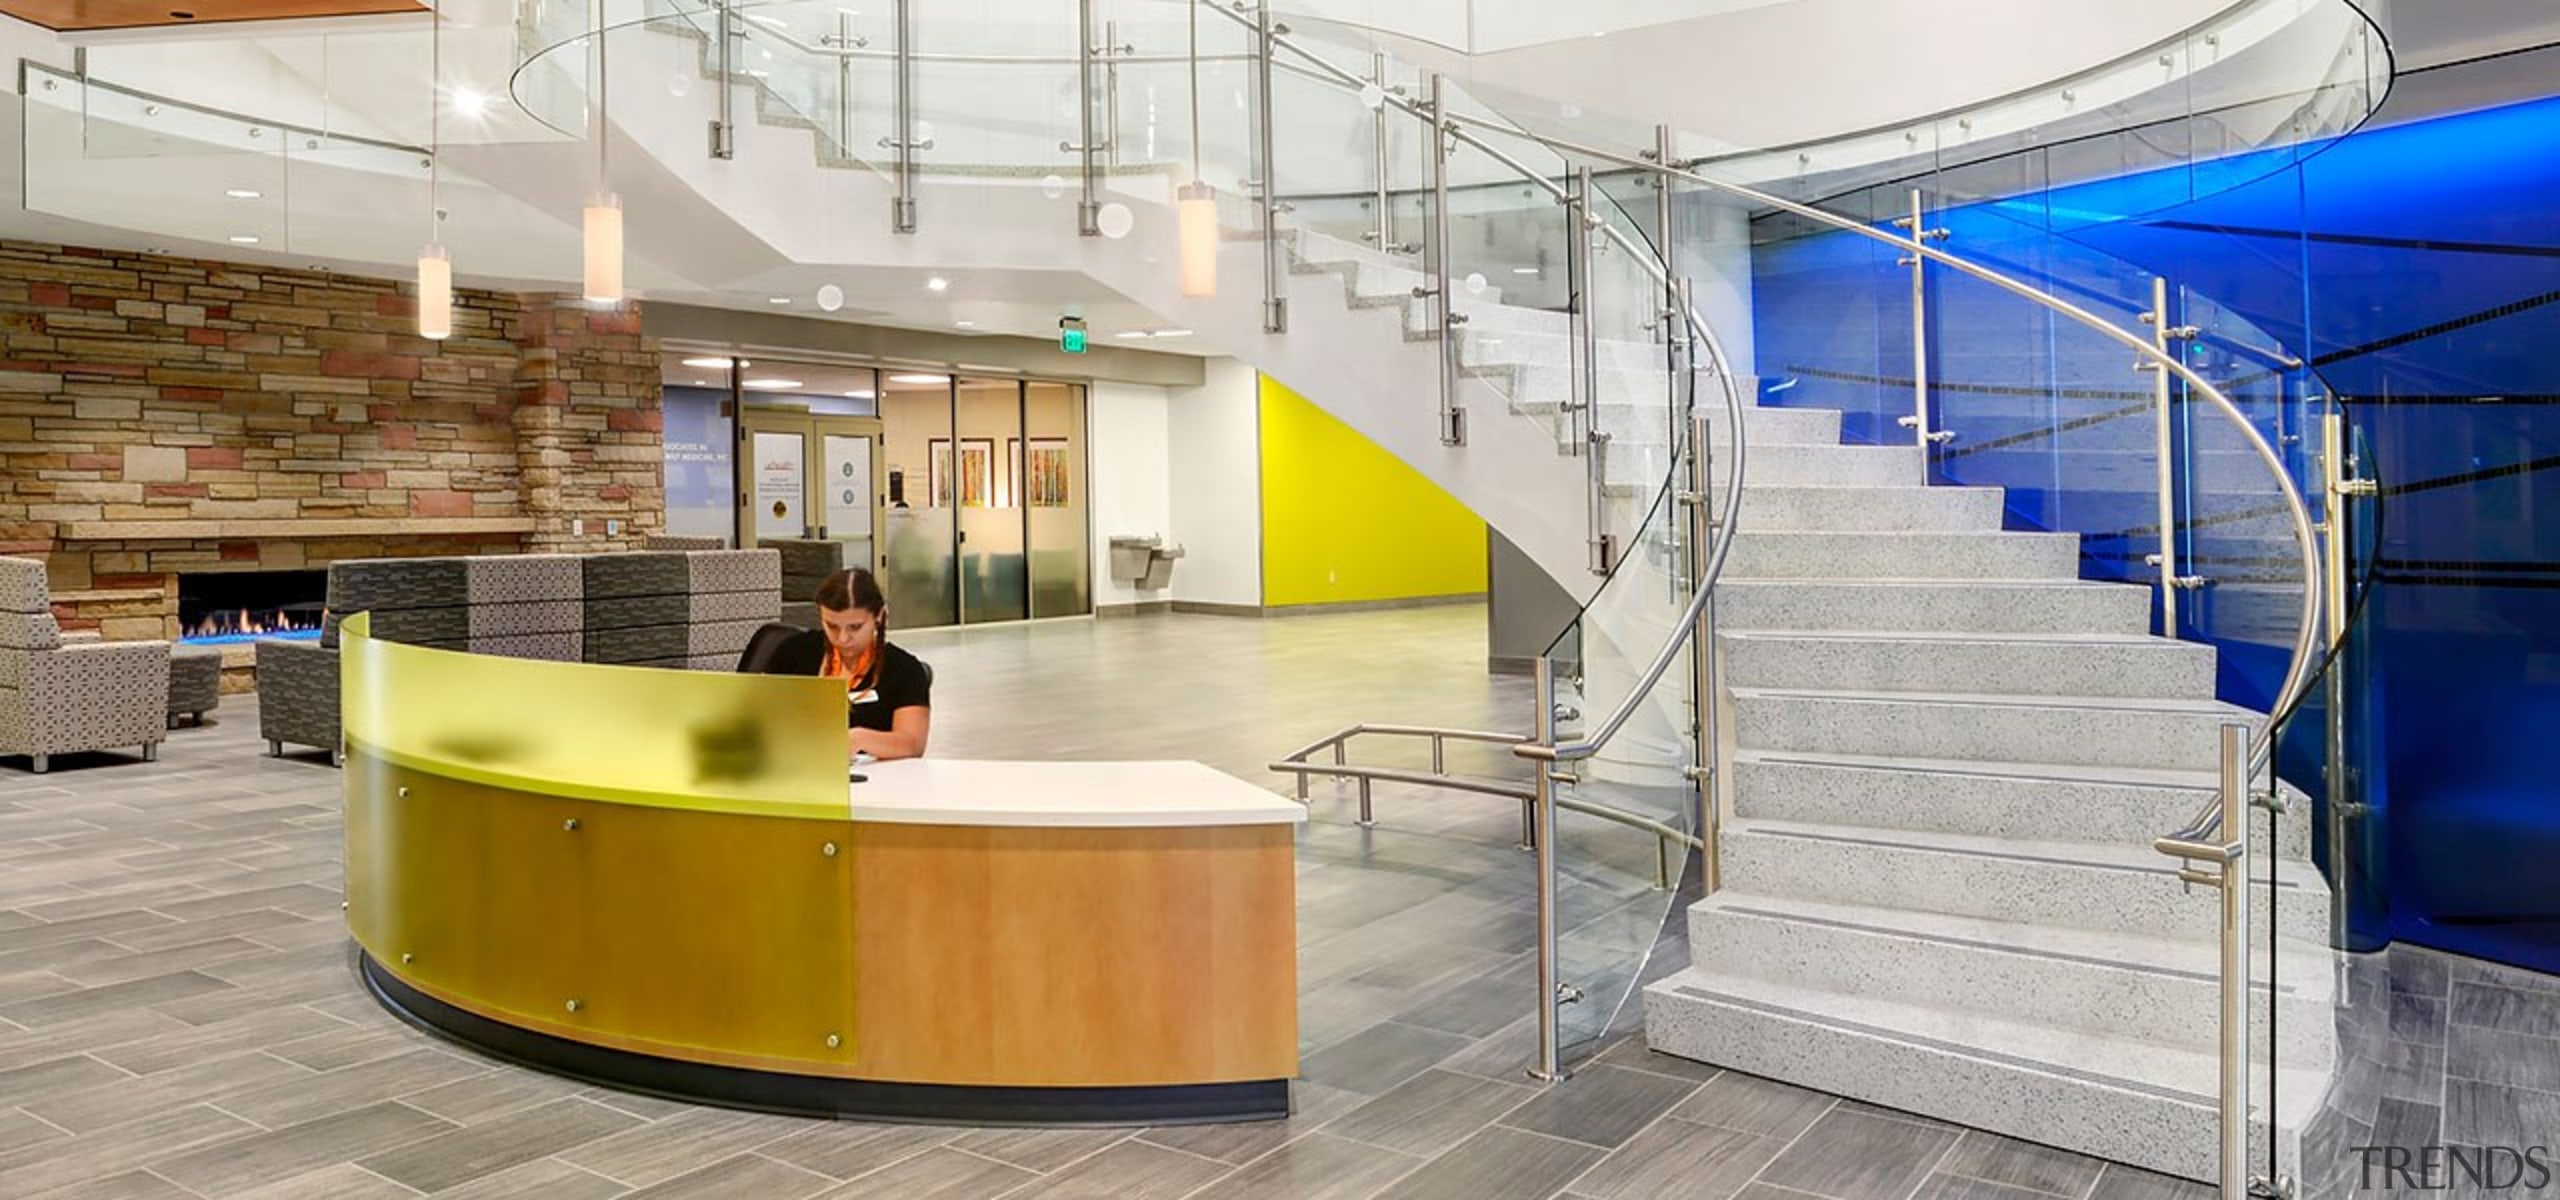 Colorado State University - architecture | building | architecture, building, design, floor, flooring, interior design, lobby, office, stairs, gray